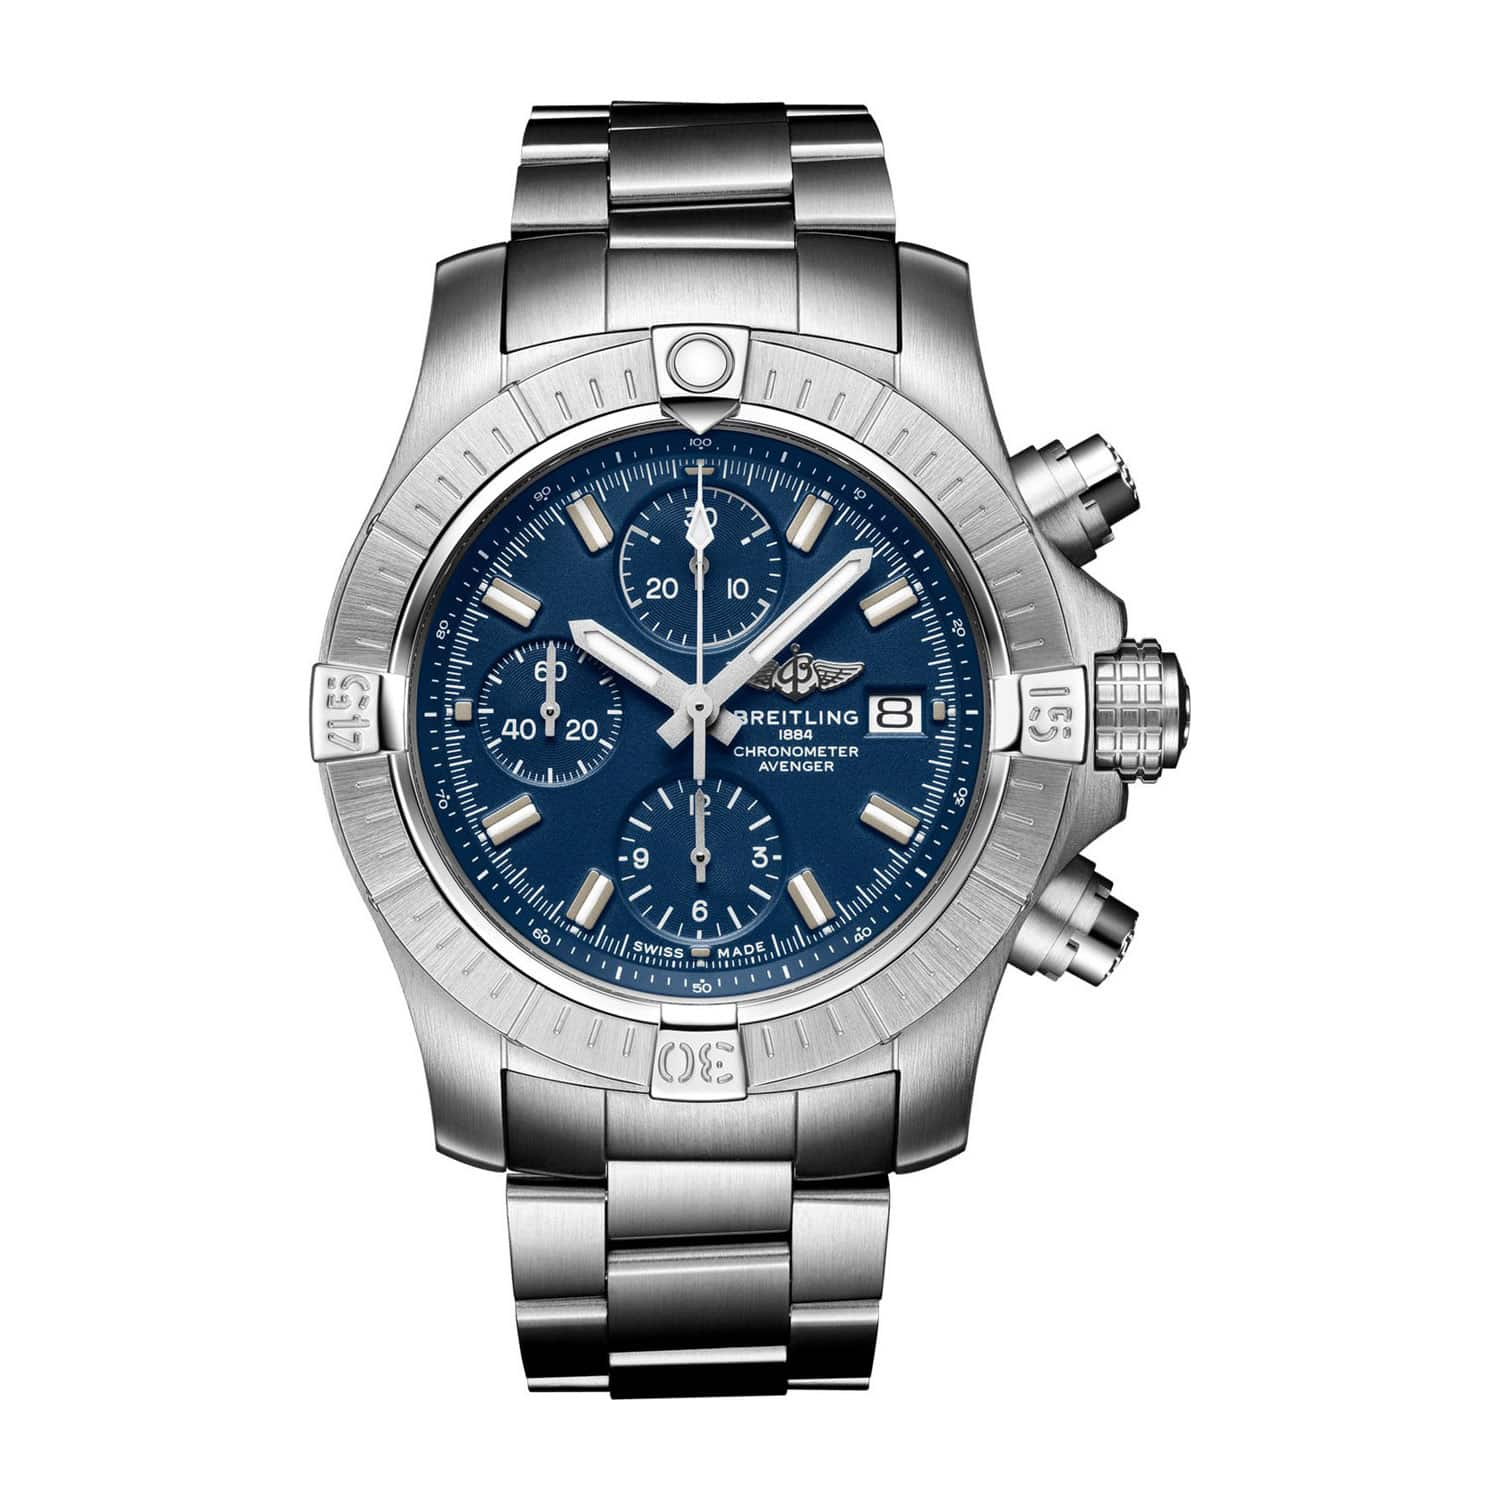 Breitling Avenger 43mm Chronograph Blue Dial Steel Case Bracelet Watch